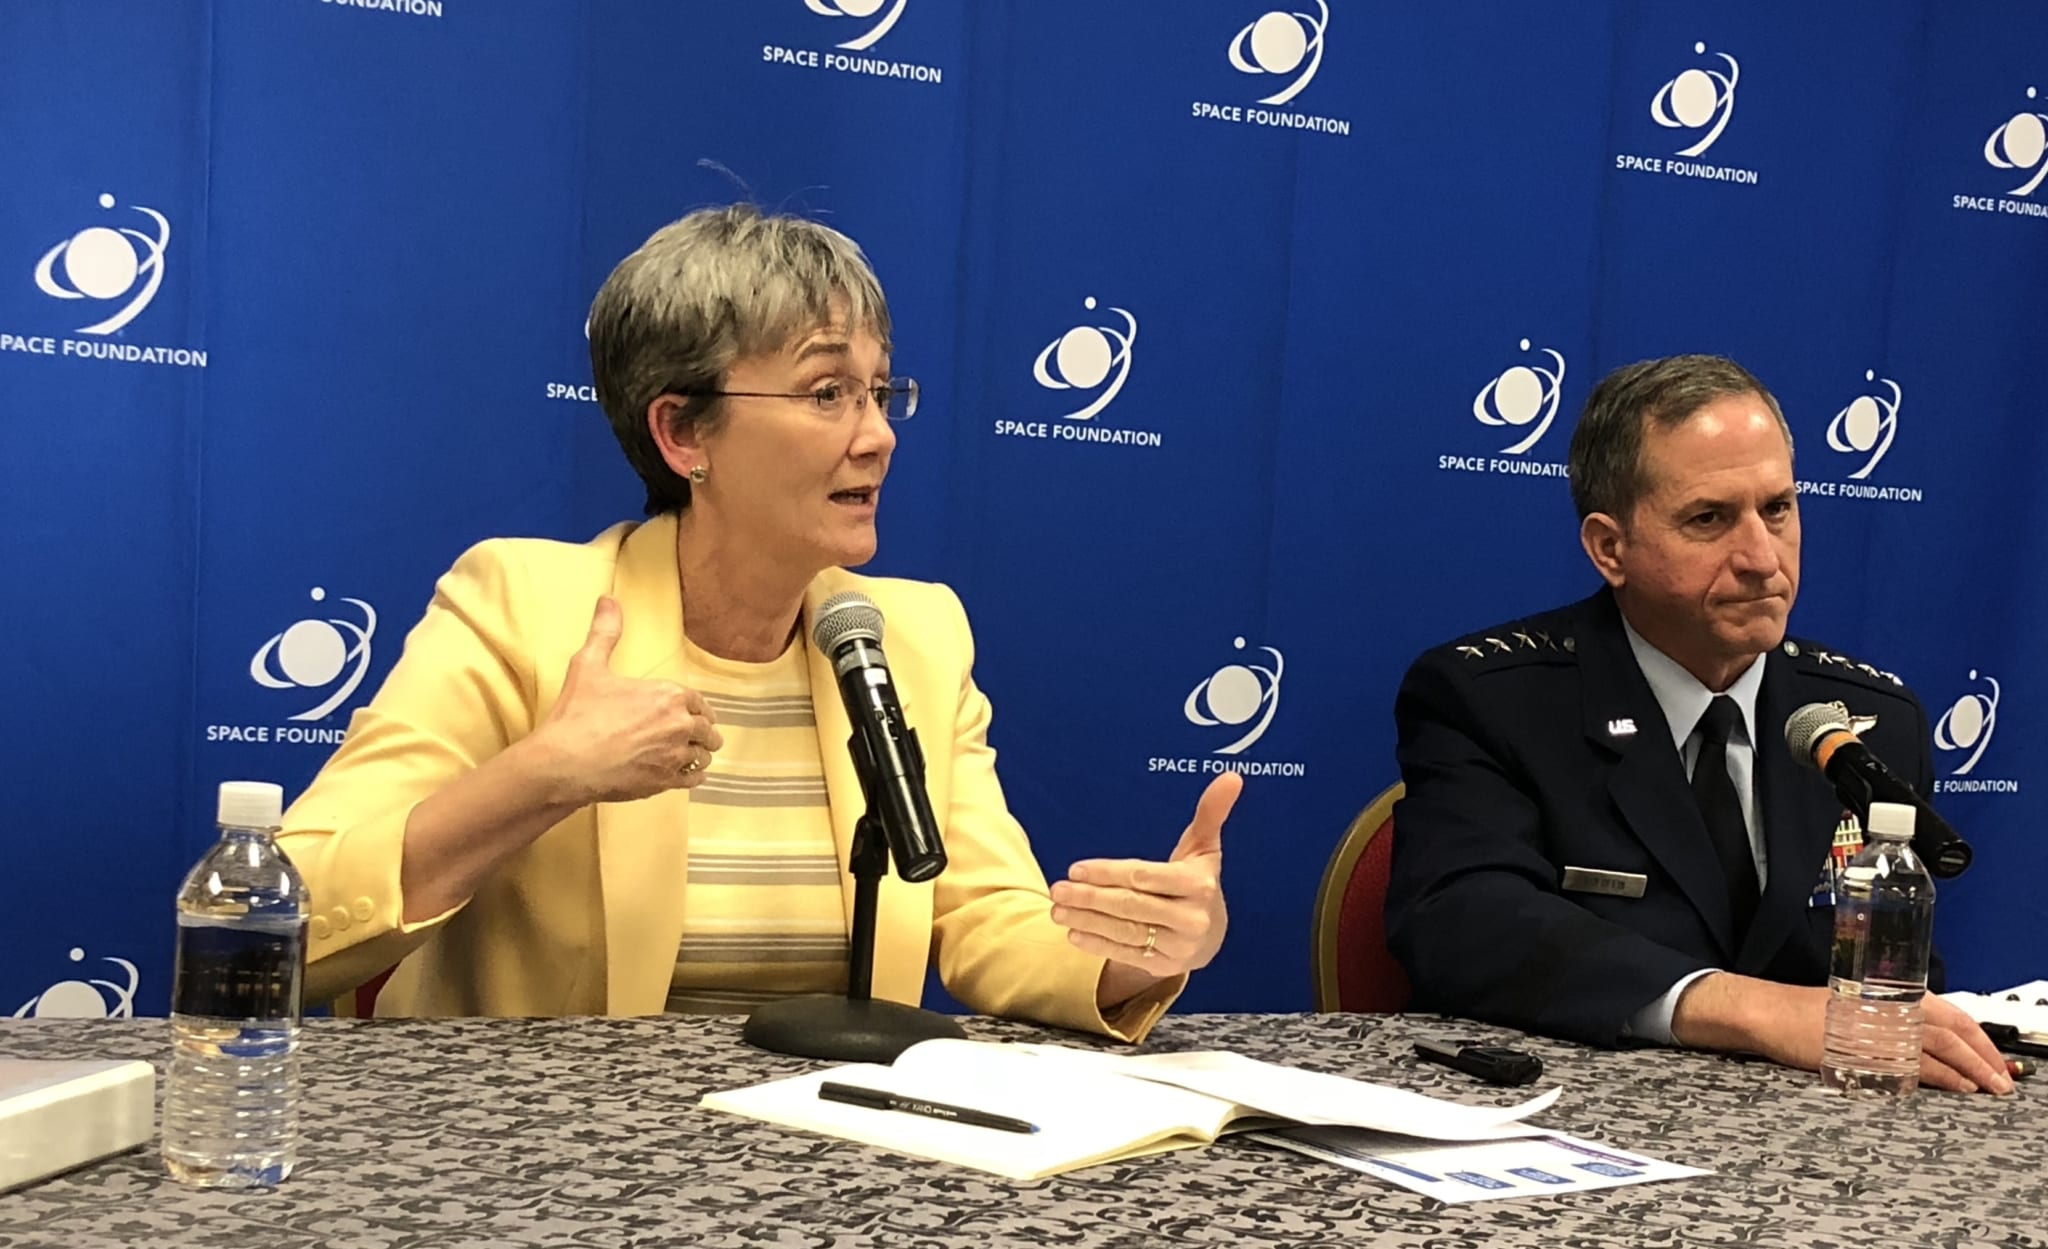 IMage Secretary of the U.S. Air Force Heather Wilson and USAF Gen. David L. Goldfein at the 34th Space Symposium in 2018.